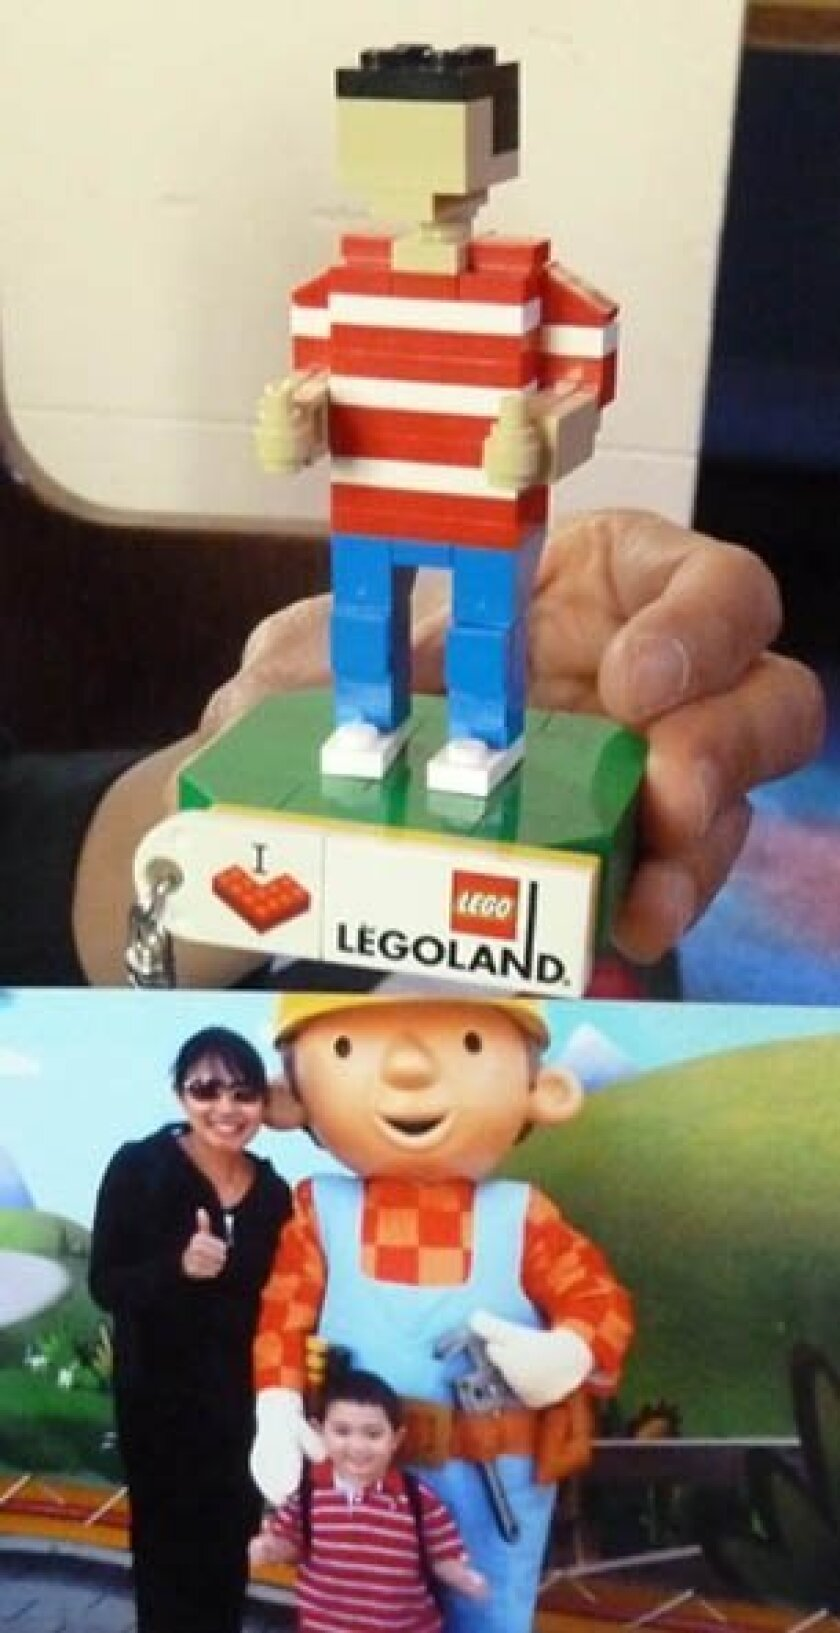 This photo of Mikael Larson and his mother, Maria, at Legoland inspired the thumbs-up Lego figure (above) that was placed in Miniland in memory of the 6-year-old who died in 2012.